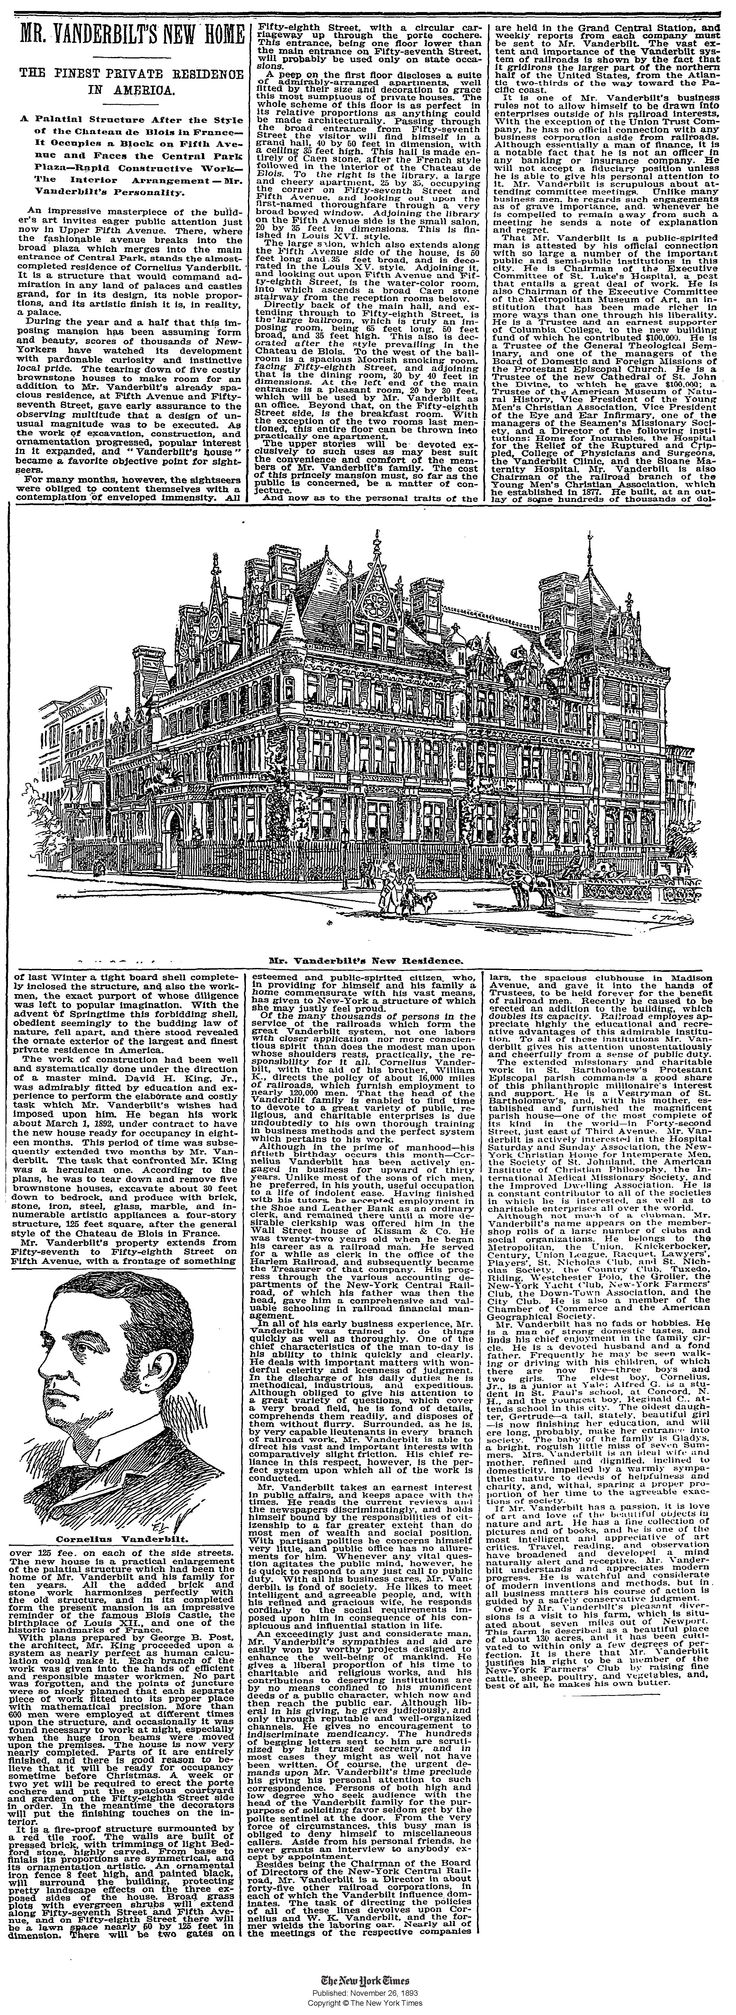 Nyc apartment cooper and vanderbilt at carter s funeral service above - Cornelius Vanderbilt Ii Residence New York Ny Ny Times 26 Nov 1893